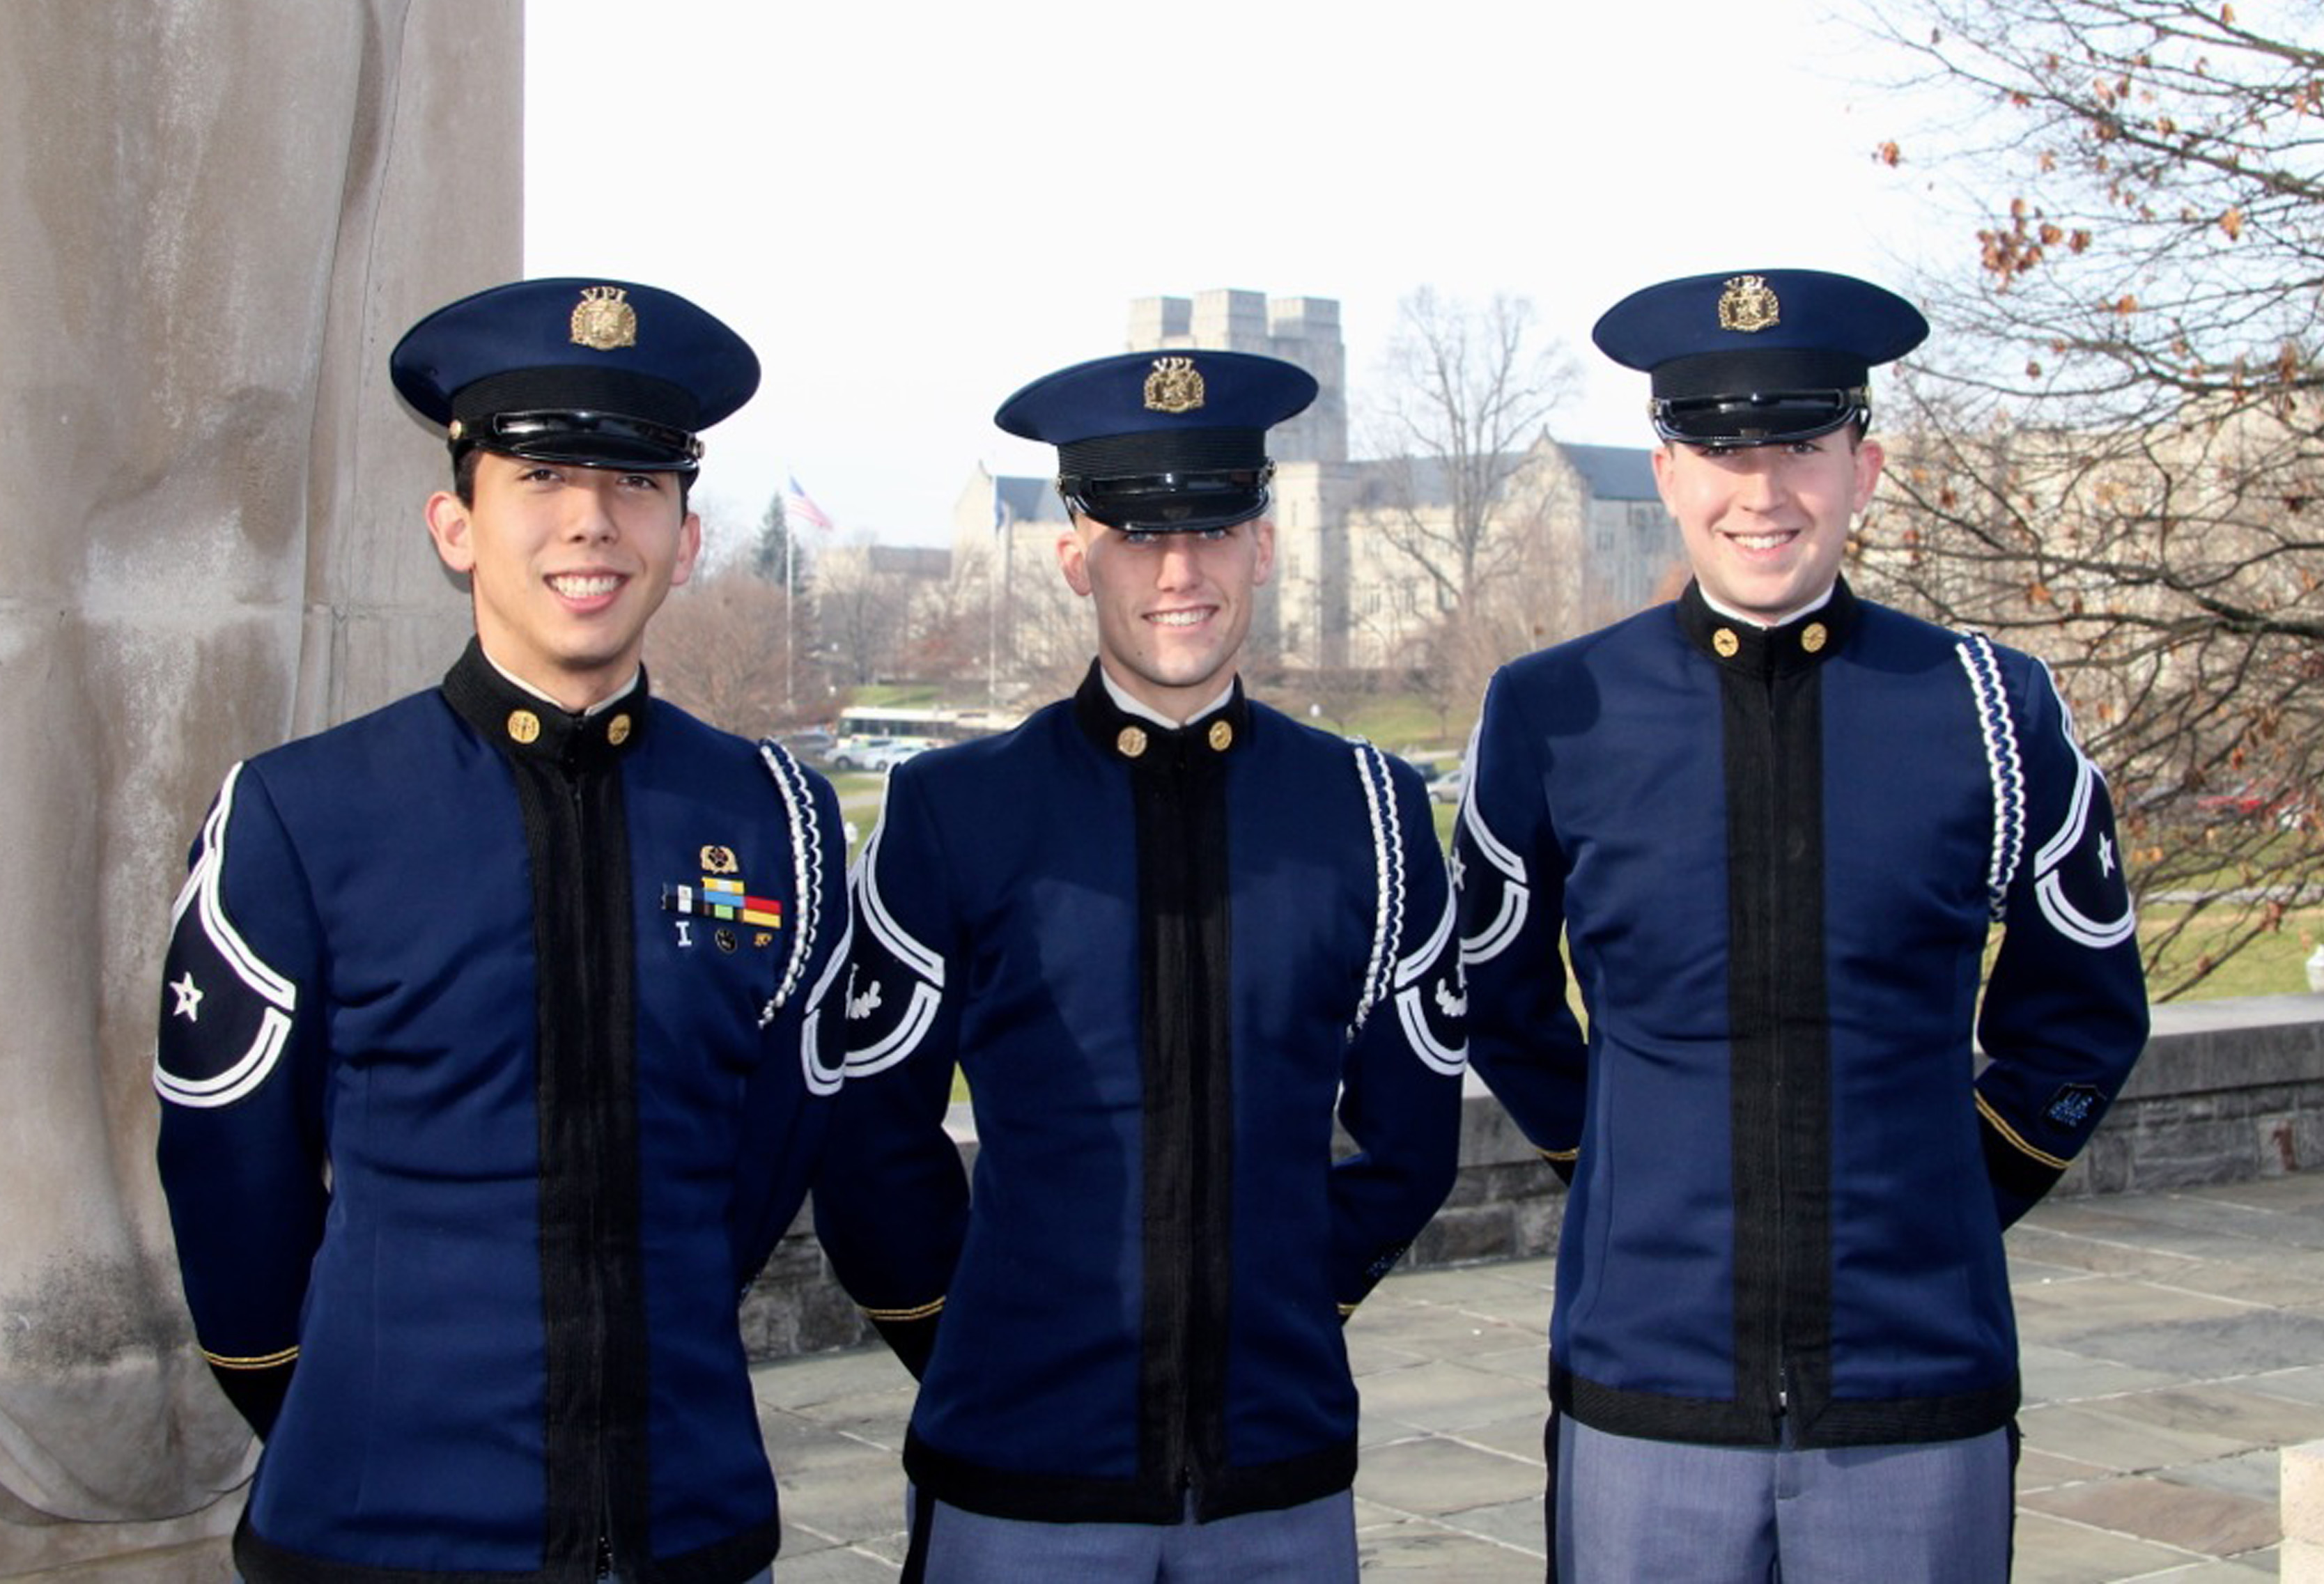 From left to right are Cadets Dustin Caranci, Austin Burns, and Brett Cowell standing at the Pylons